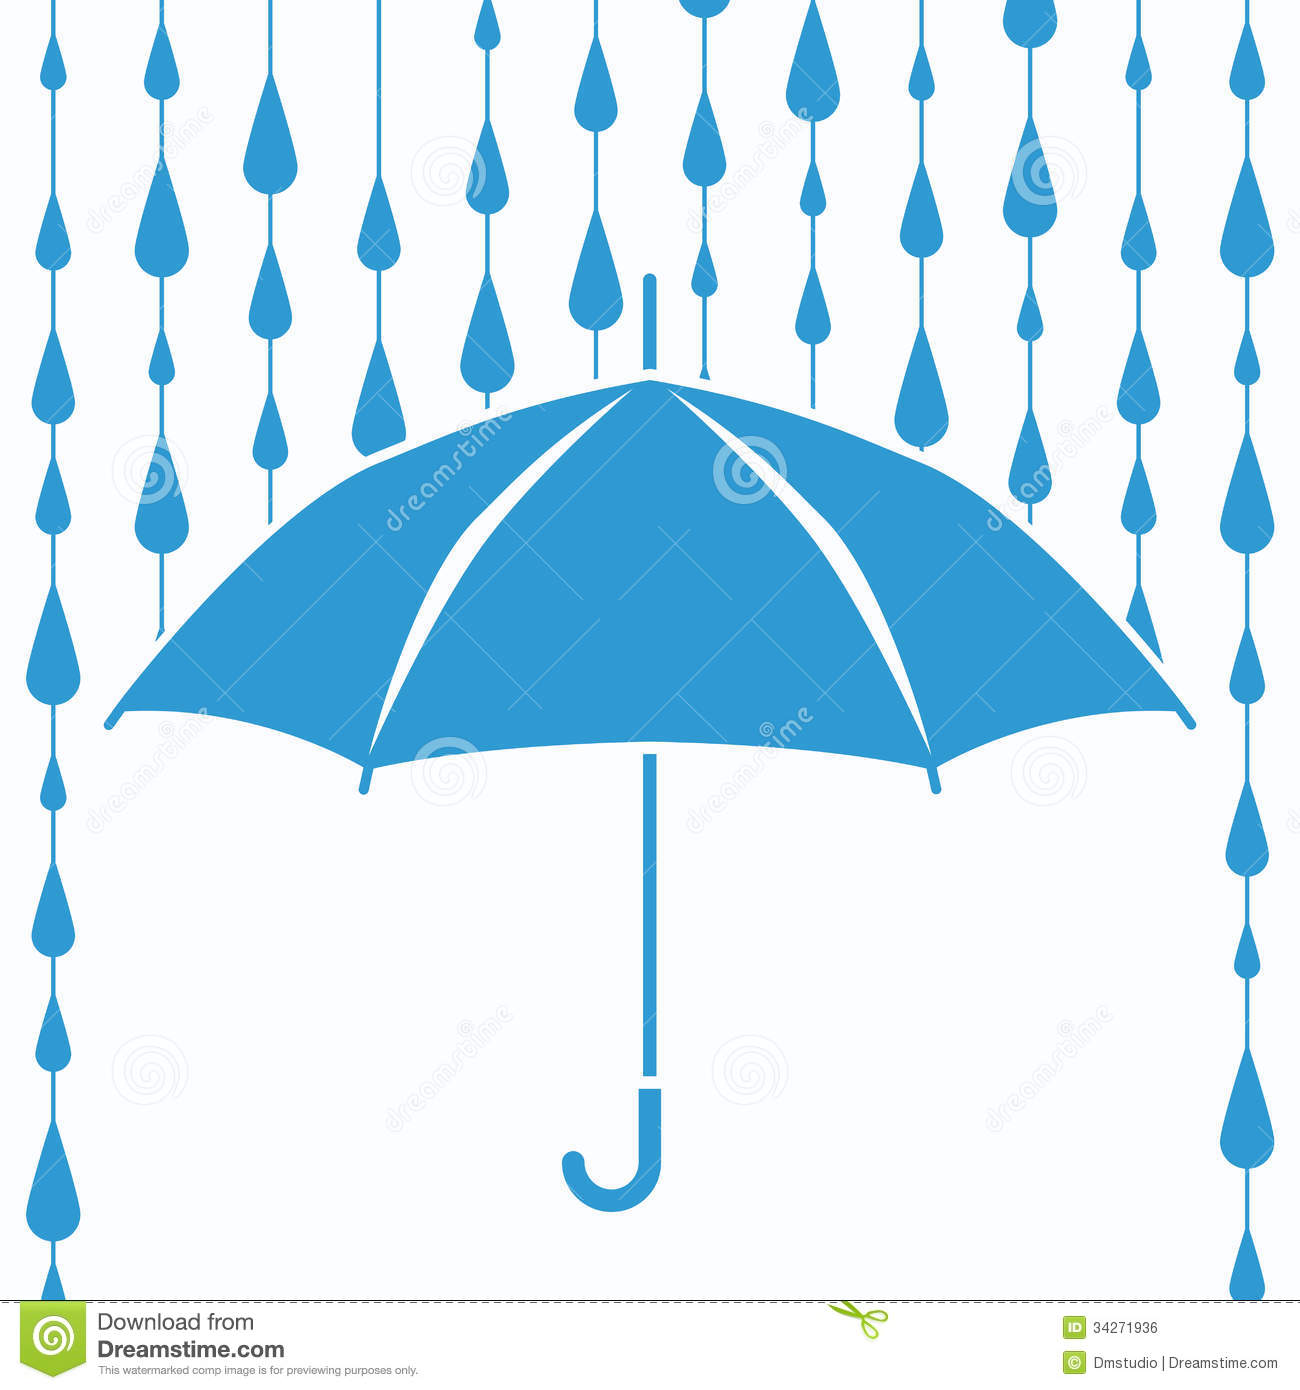 1300x1390 Umbrella Clipart Umbrella Raindrops